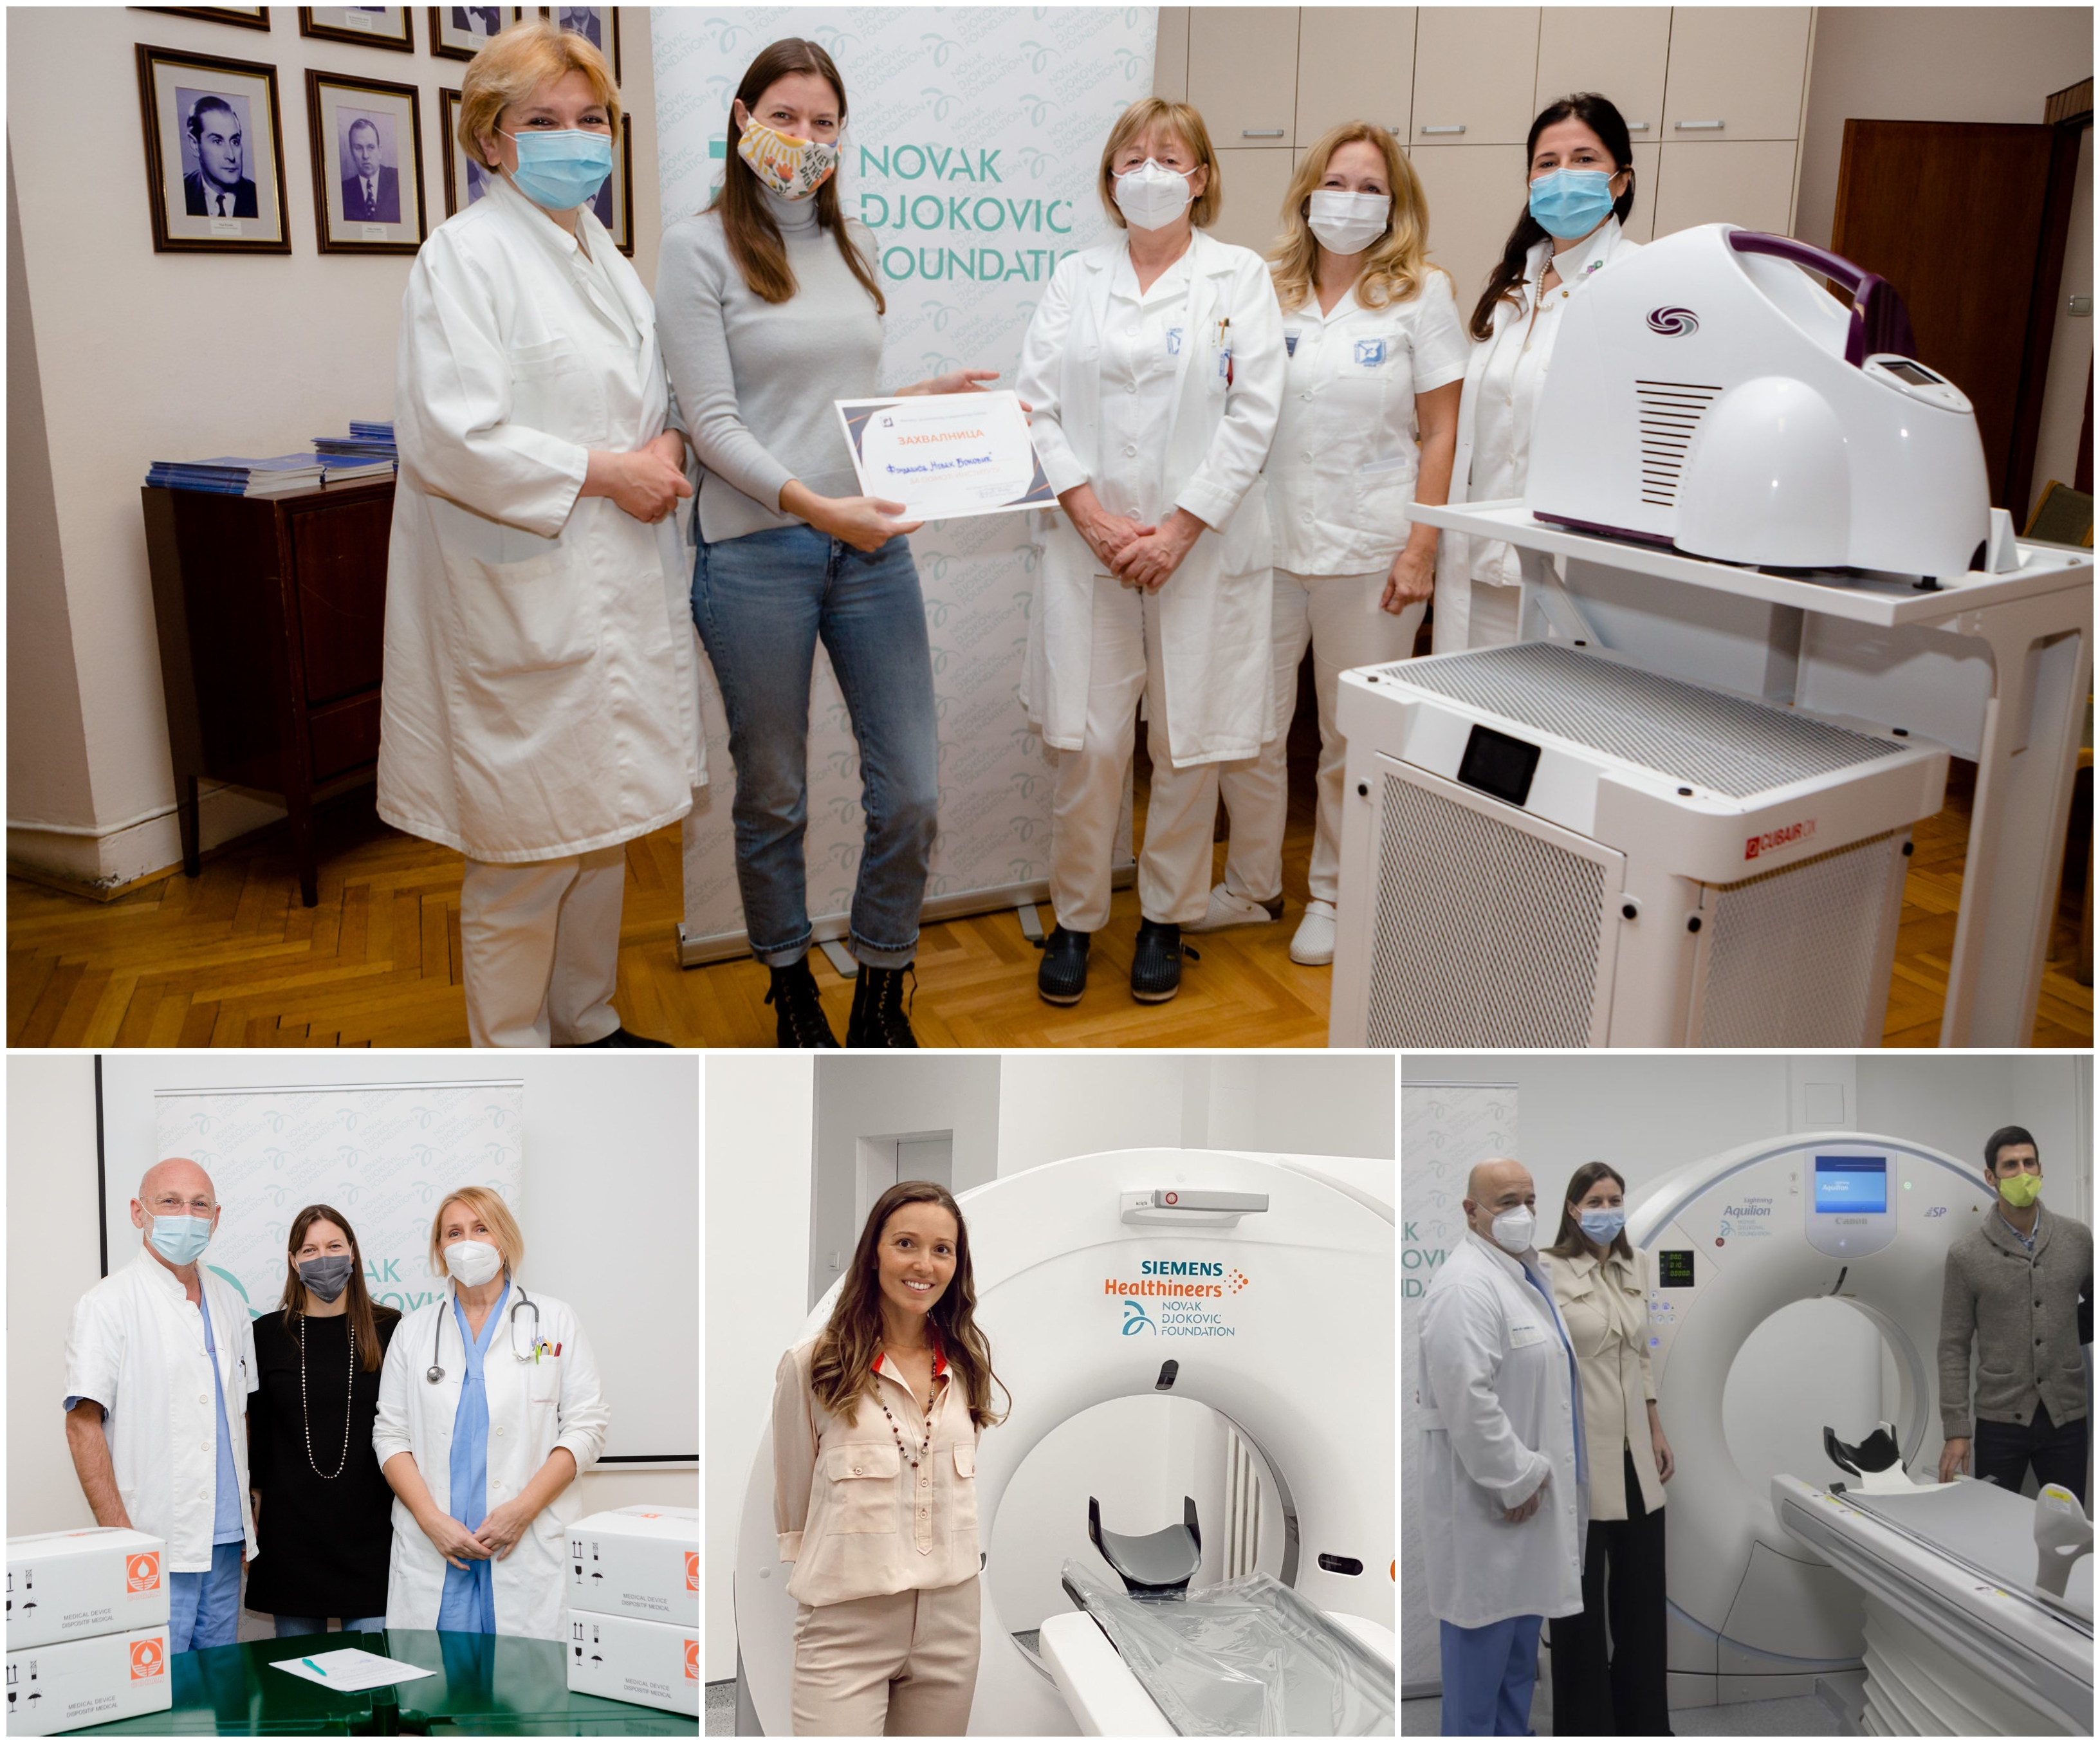 World Health Day: Novak Djokovic Foundation's support of Serbia's health system in its fight against COVID-19.